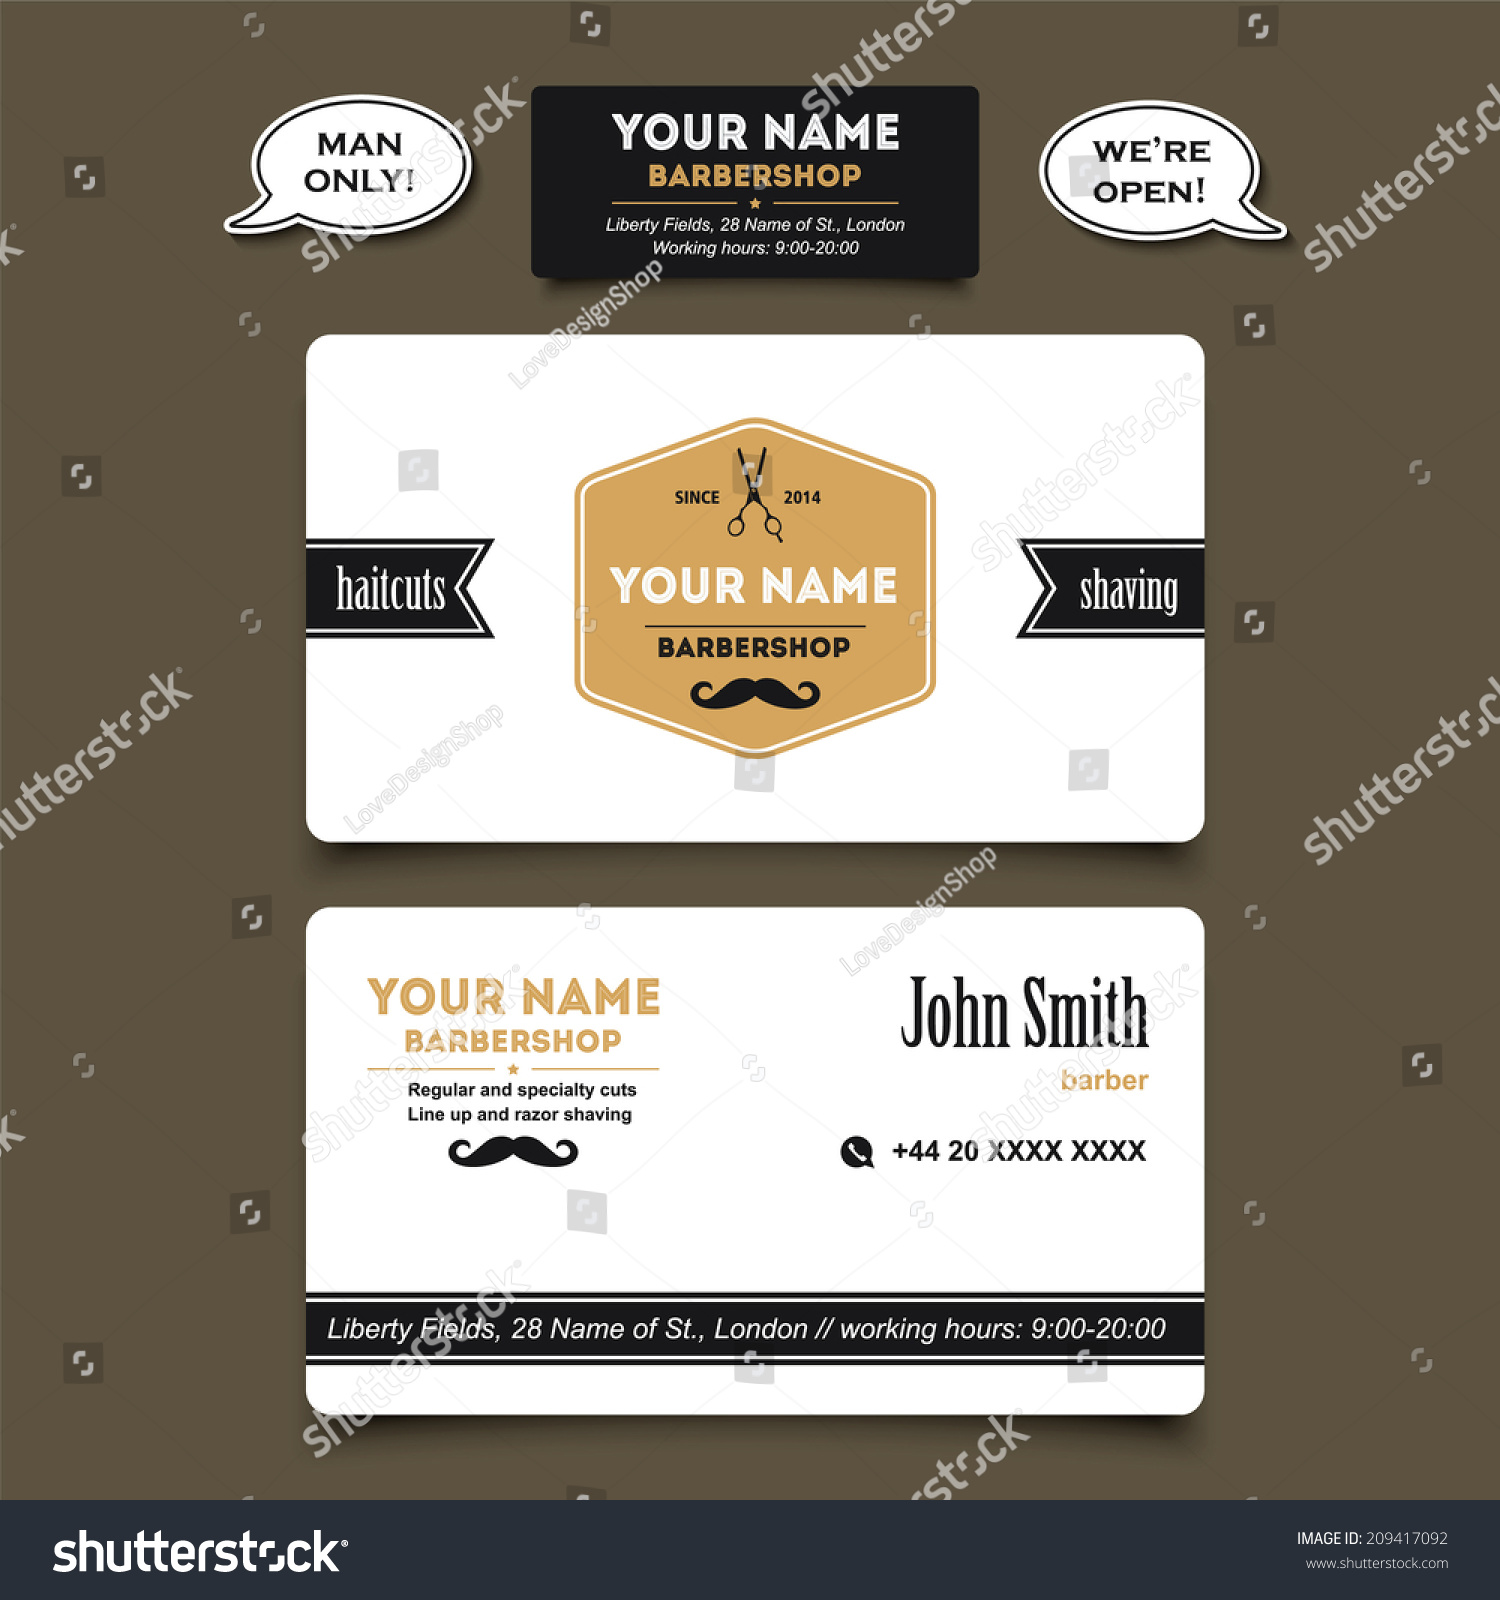 Hair salon barber shop business card stock vector royalty free hair salon barber shop business card design vector template fbccfo